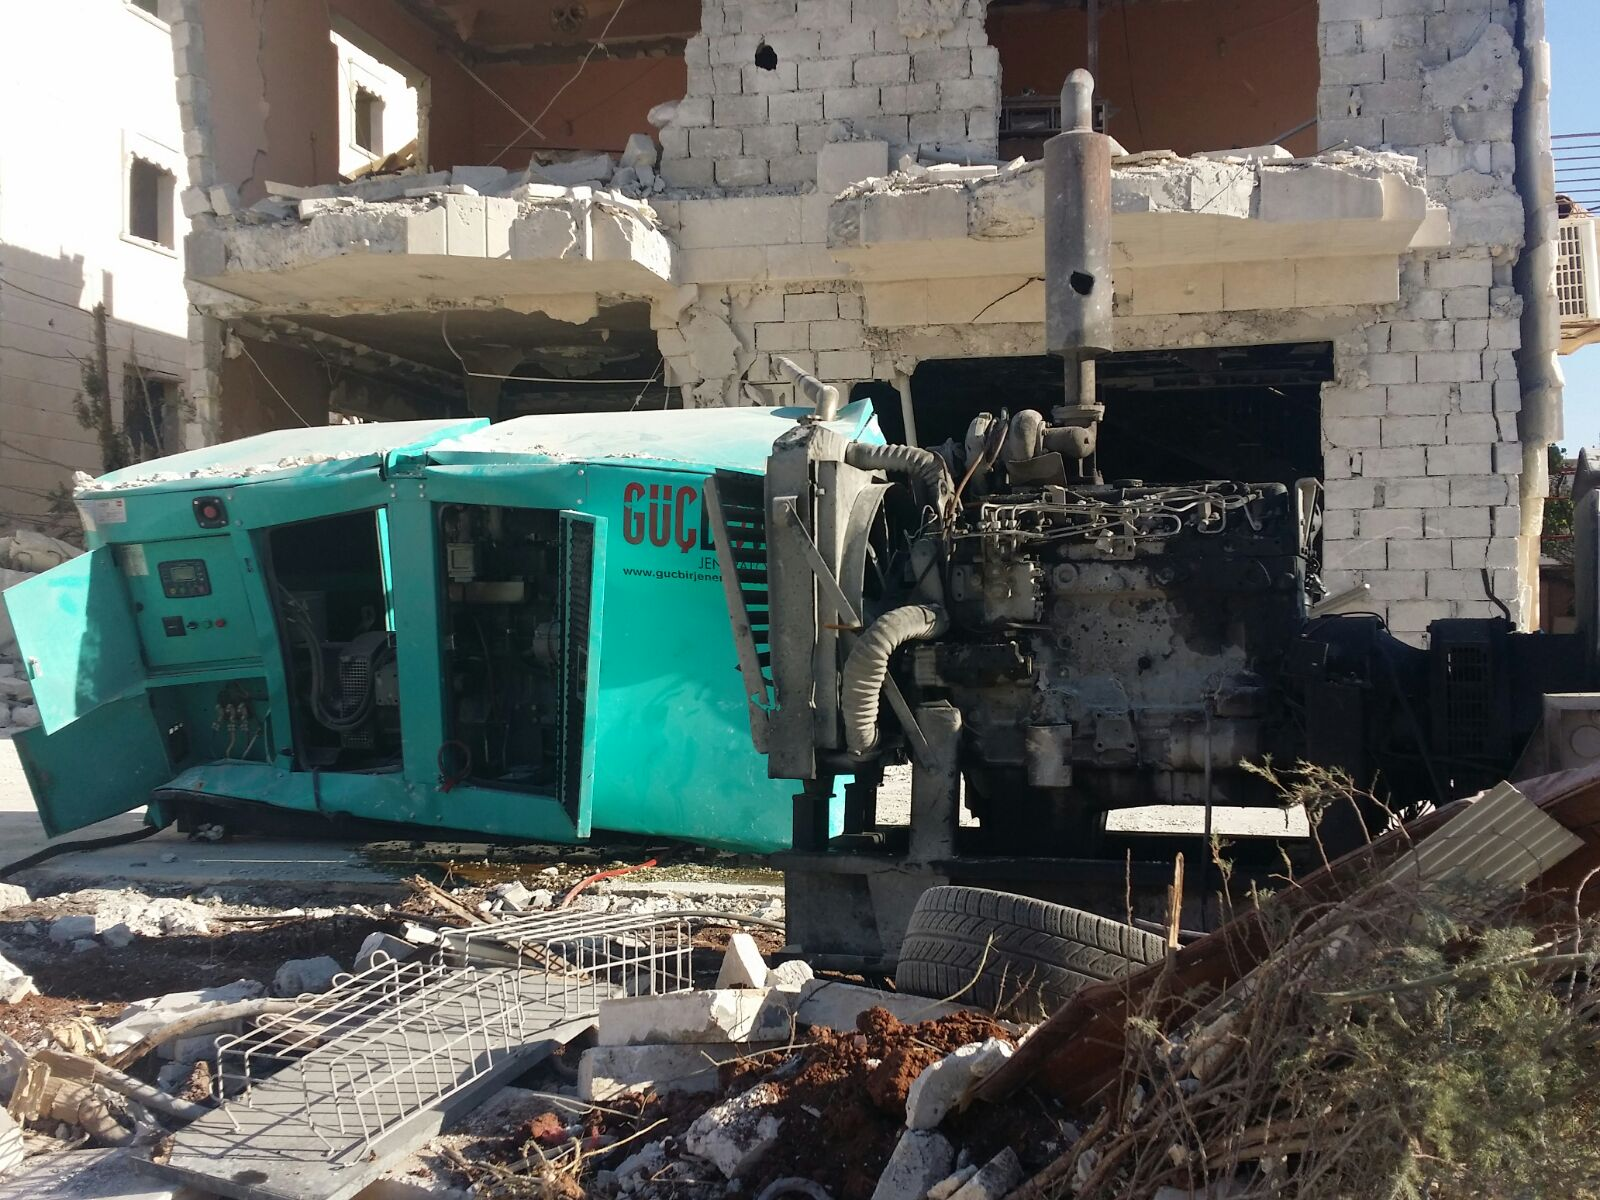 SRD Regional Hospital in Aleppo, Syria Damaged by Barrel Bombs